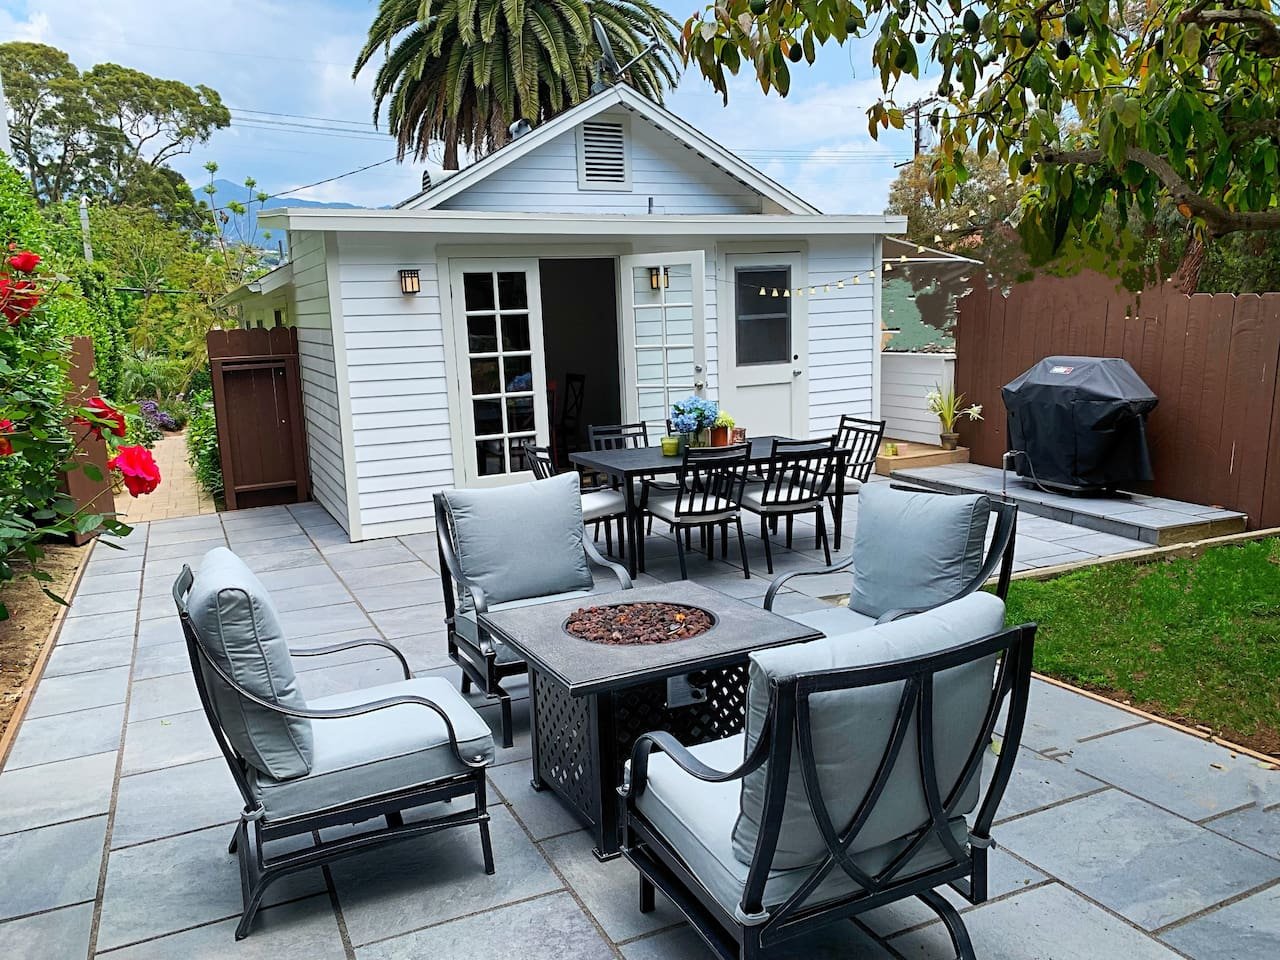 the back patio- with comfortable furniture and a gas grill